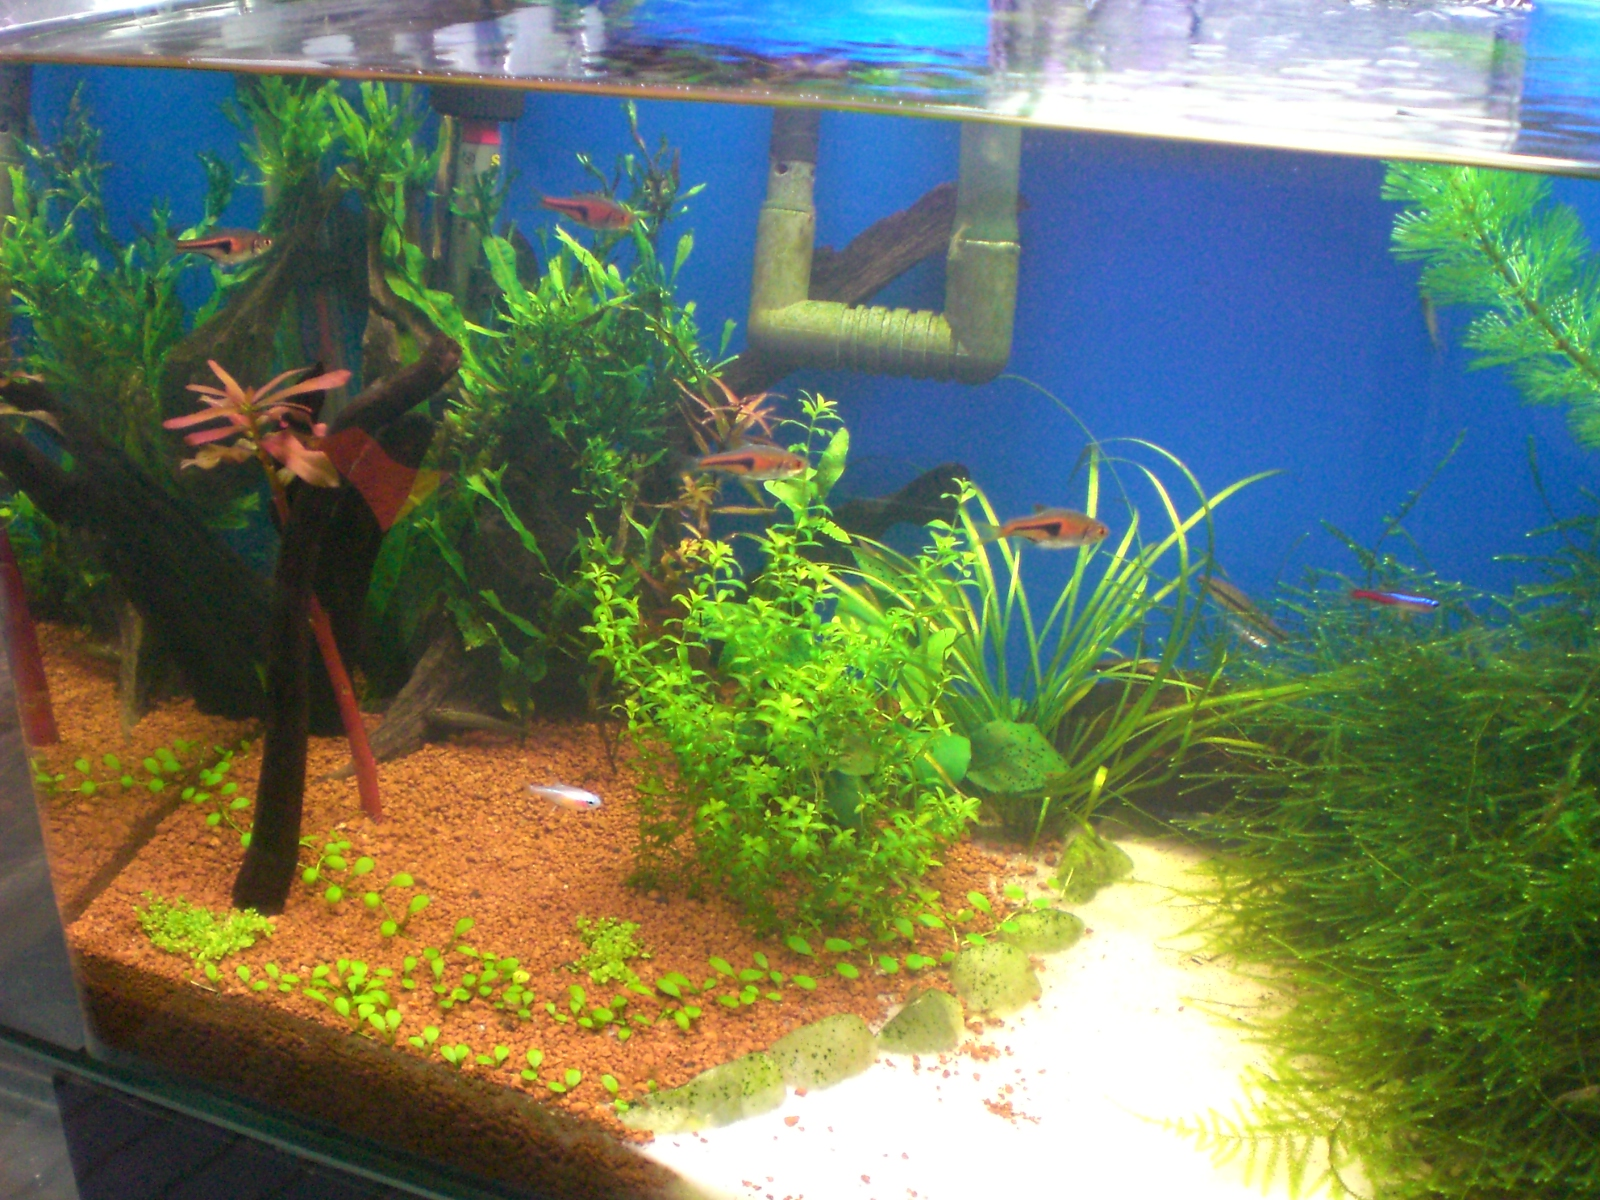 images How to Choose Fish for a Freshwater Aquarium